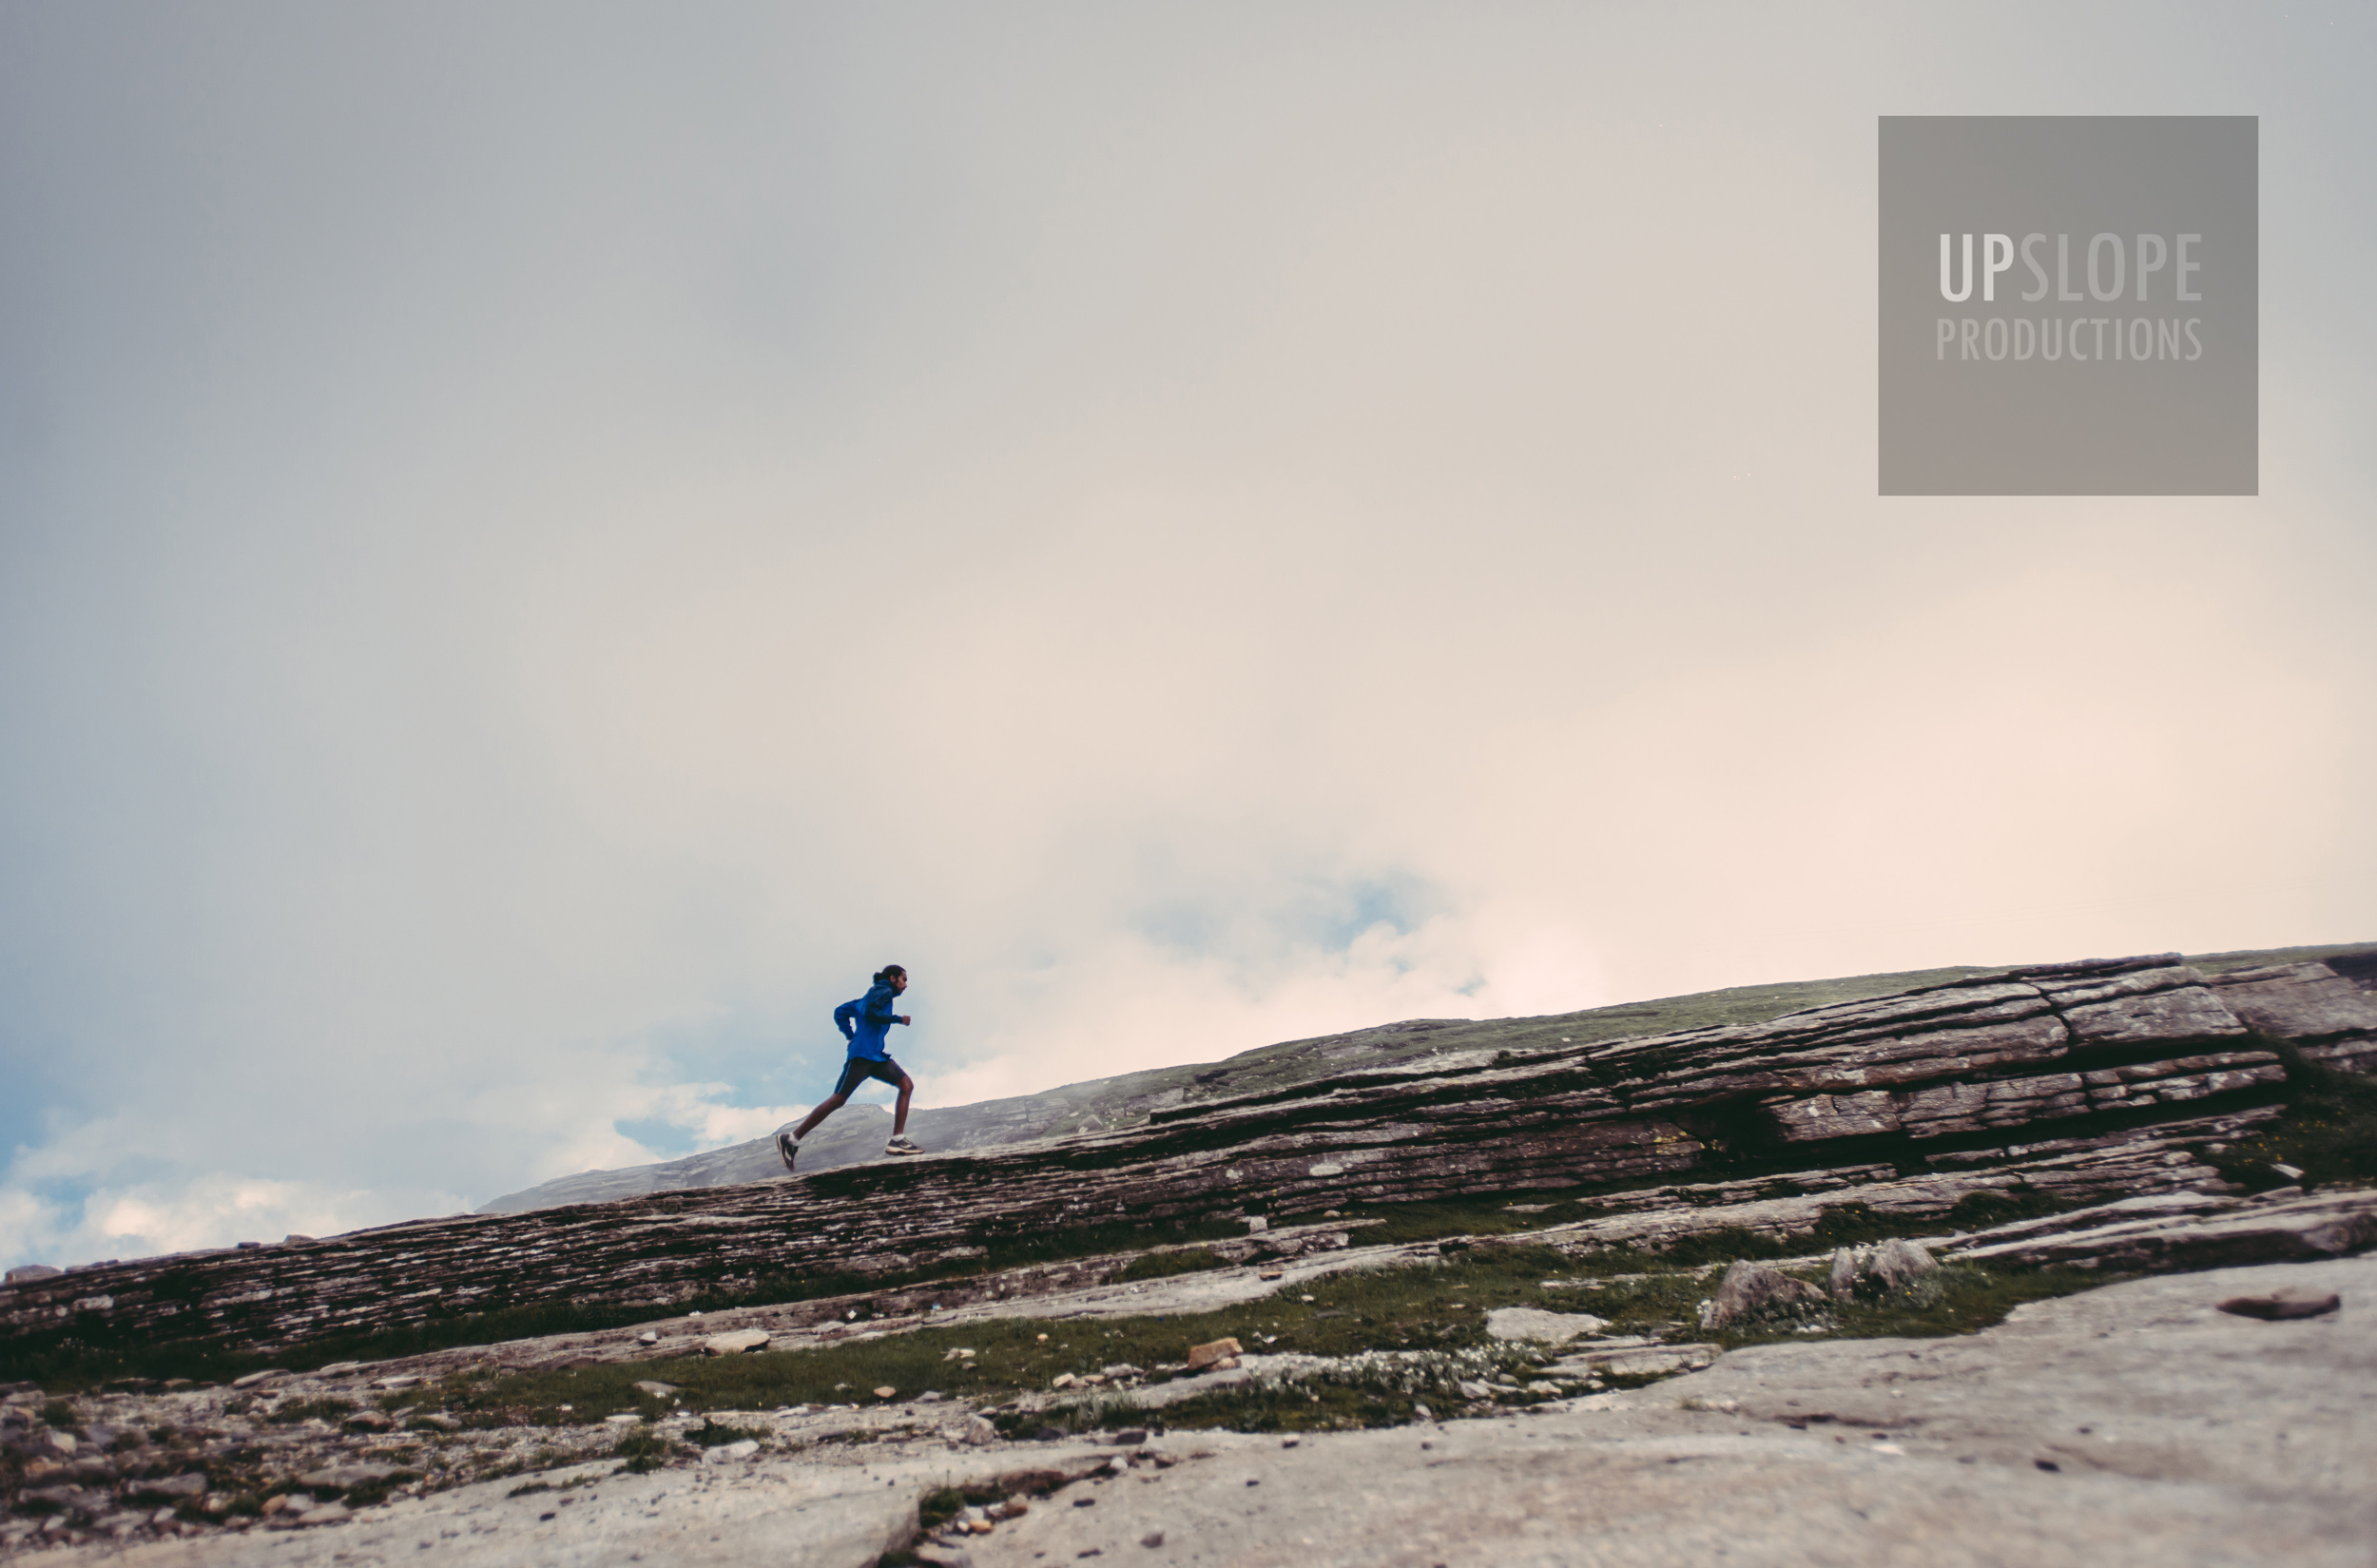 A training run, somewhere in the Himalayas